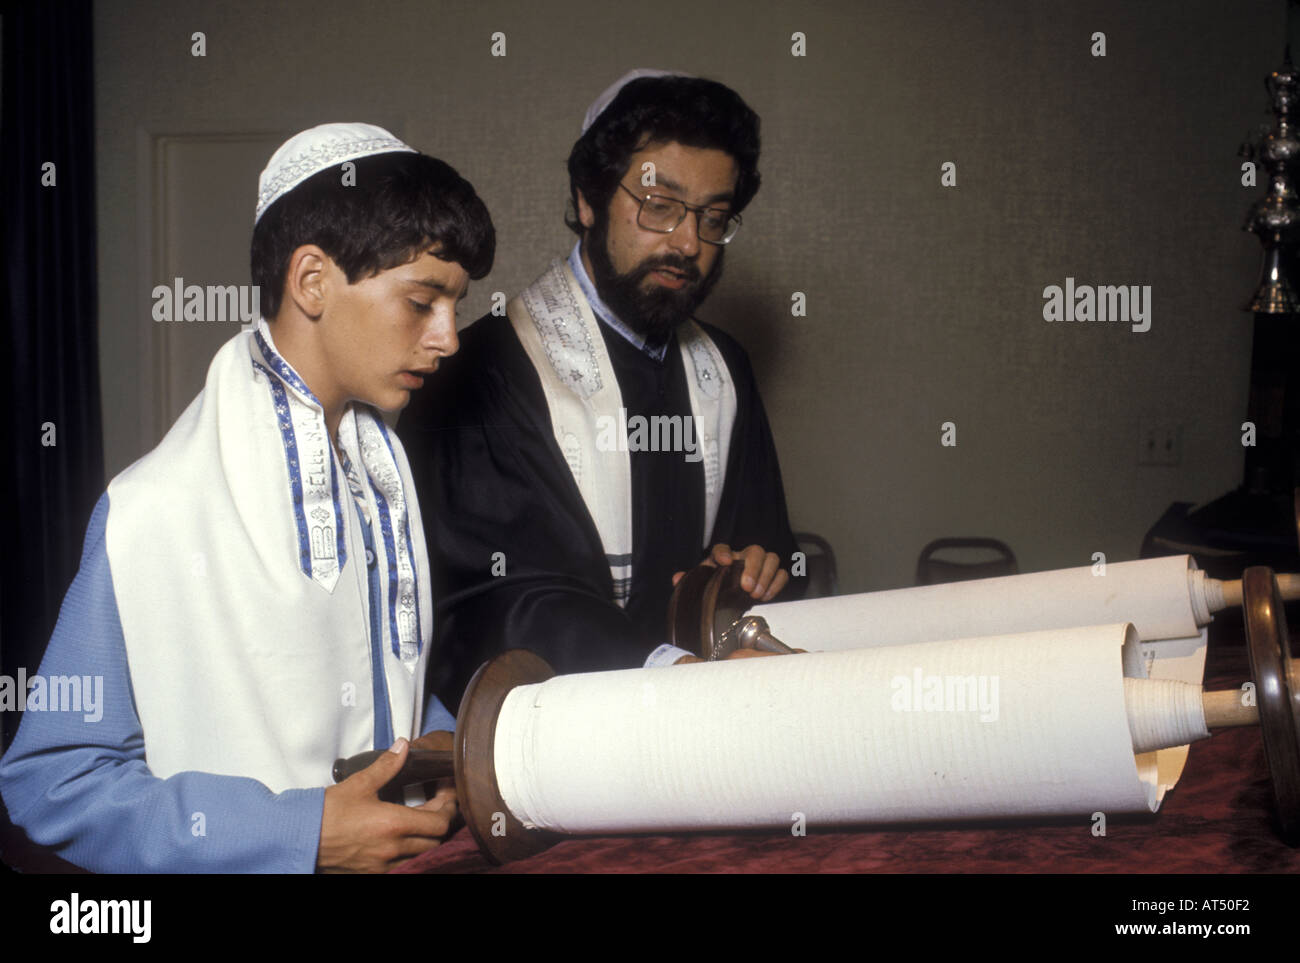 Rabbi and teenager reading from the Torah - Stock Image